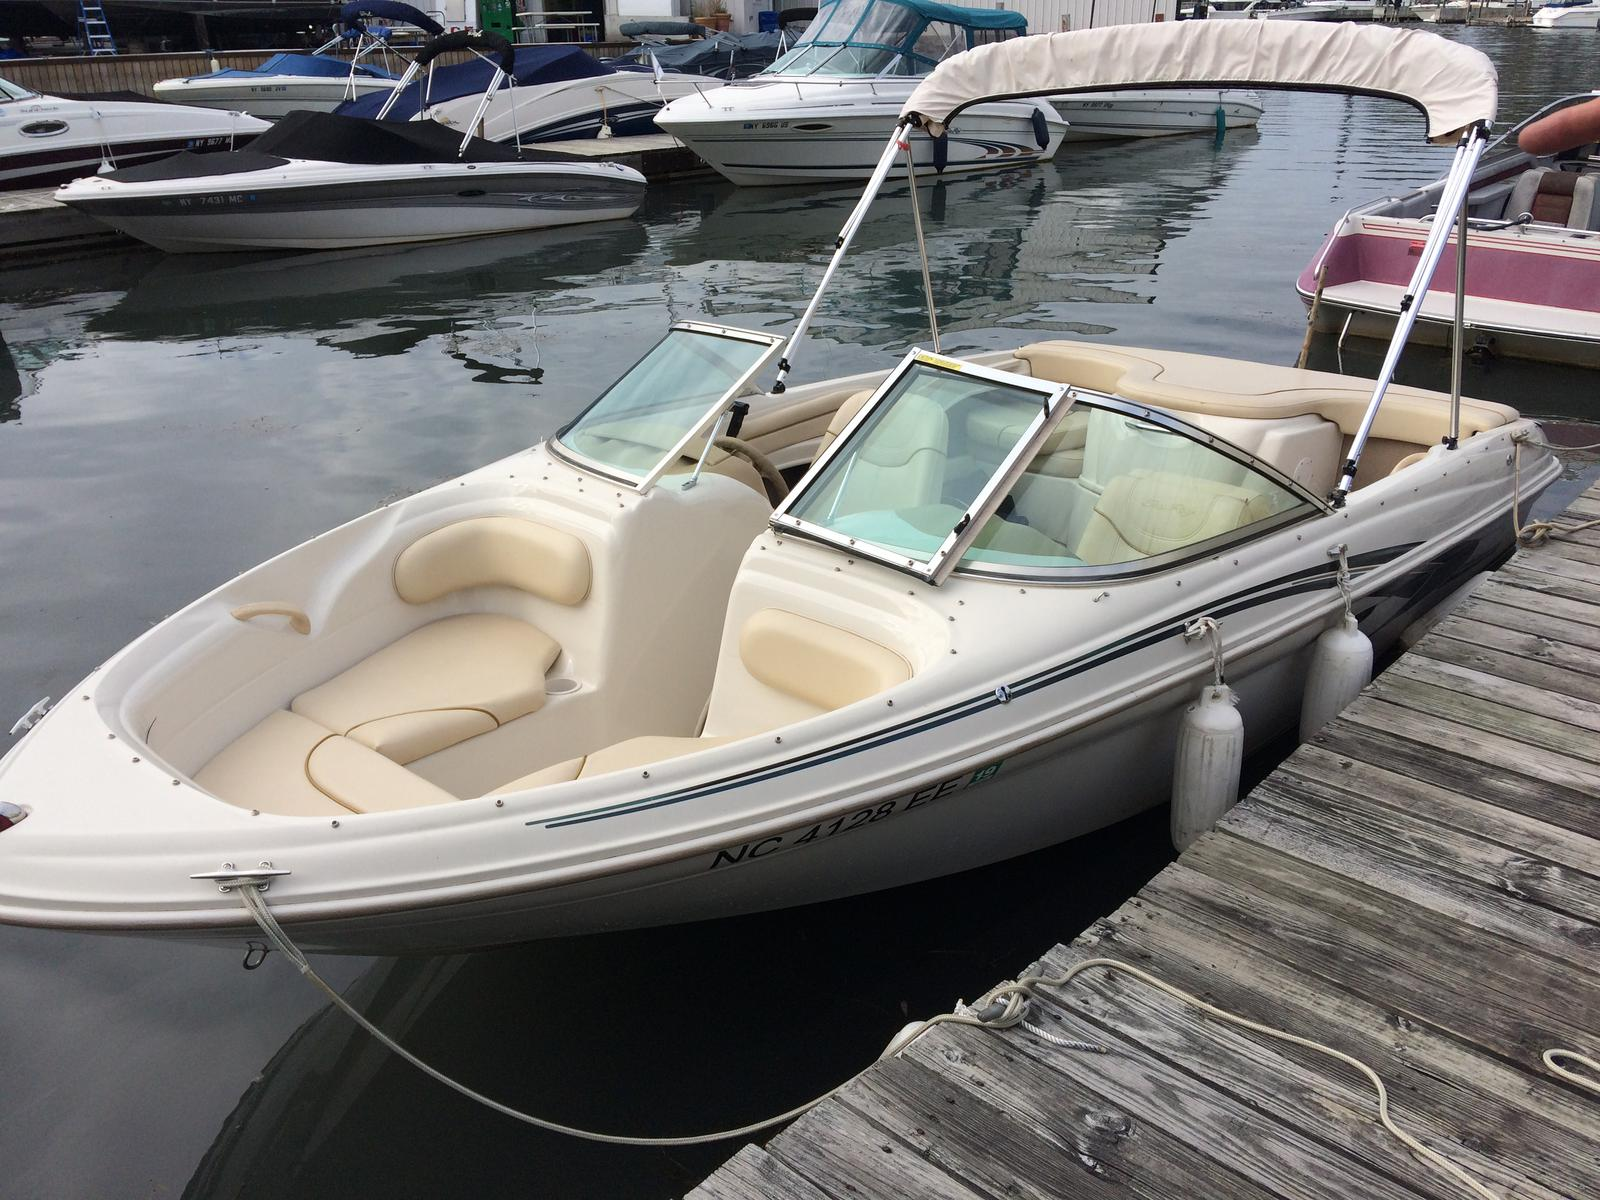 USED 2001 Sea Ray 180 Bow Rider - Hutchinson's Boat Works